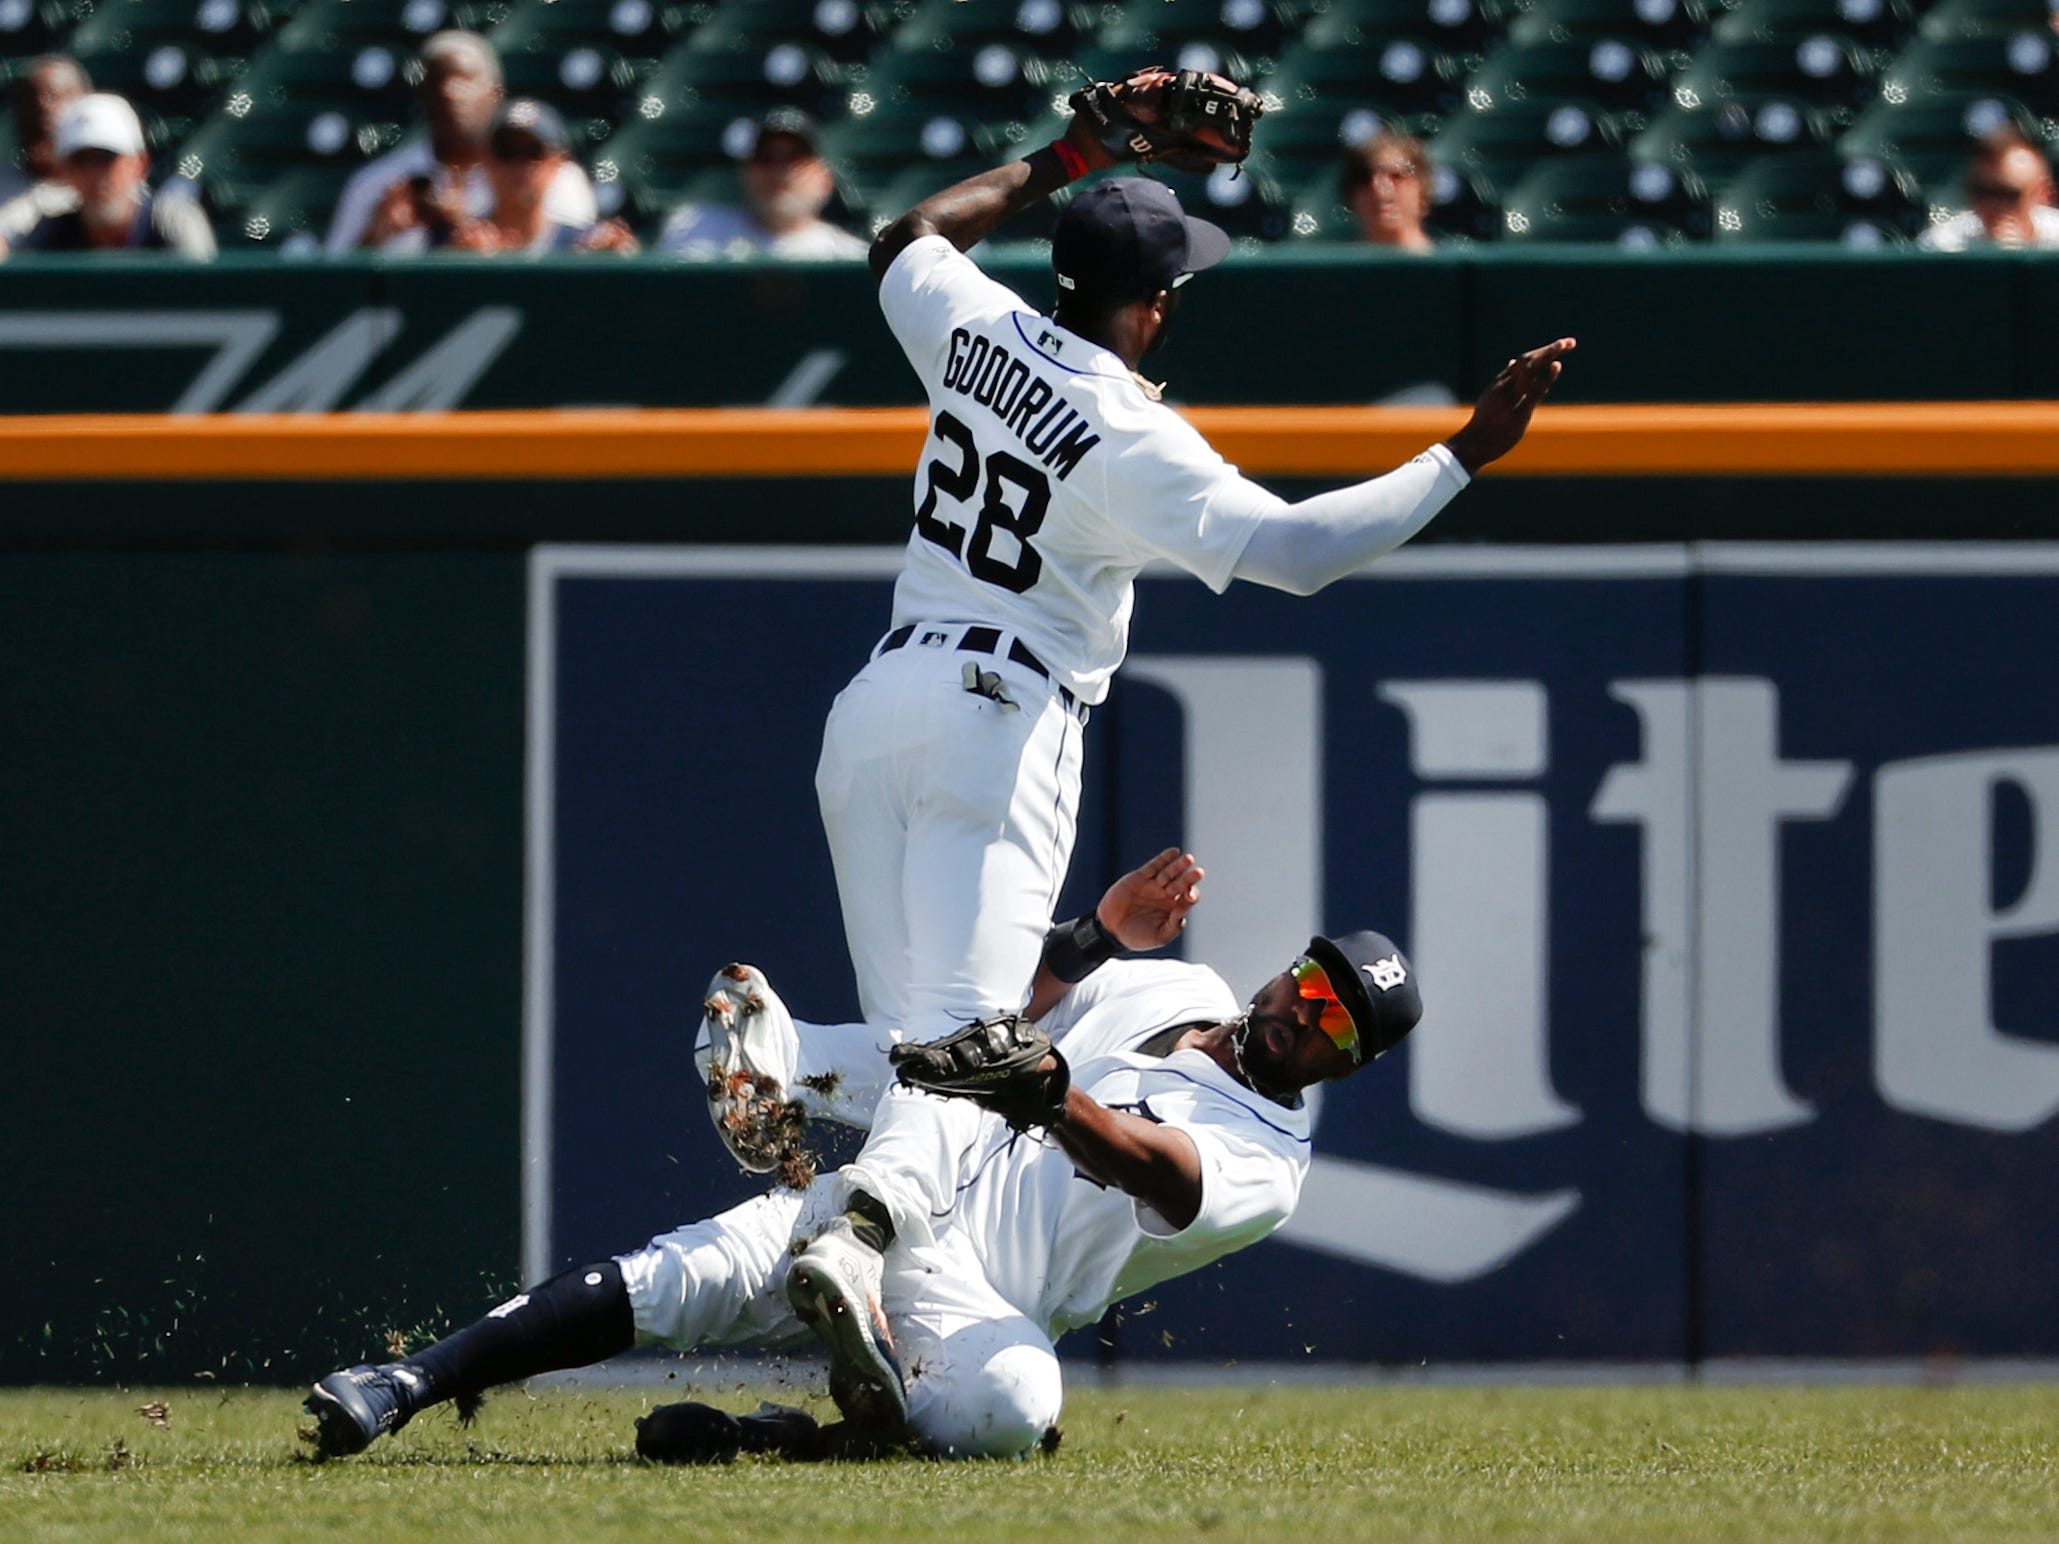 Detroit Tigers left fielder Christin Stewart, bottom, makes the catch on a Houston Astros' Evan Gattis fly ball as shortstop Niko Goodrum (28) collides with him in the second inning.